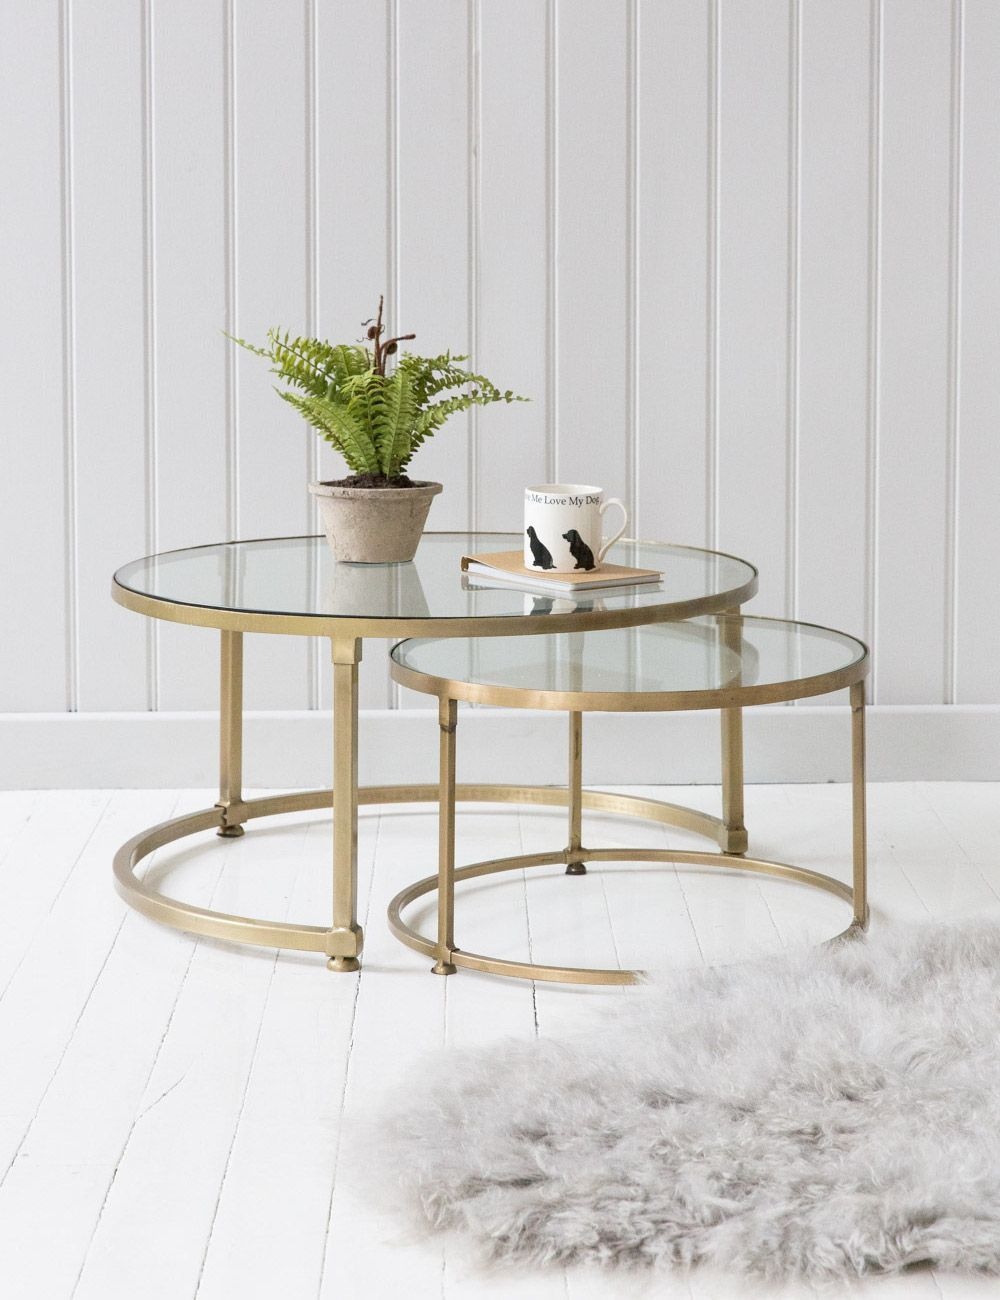 Glass Coffee Table And End Tables Set Collection Stacking Round Glass Coffee Table S Glass Coffee Table Decor Round Glass Coffee Table Round Coffee Table Decor